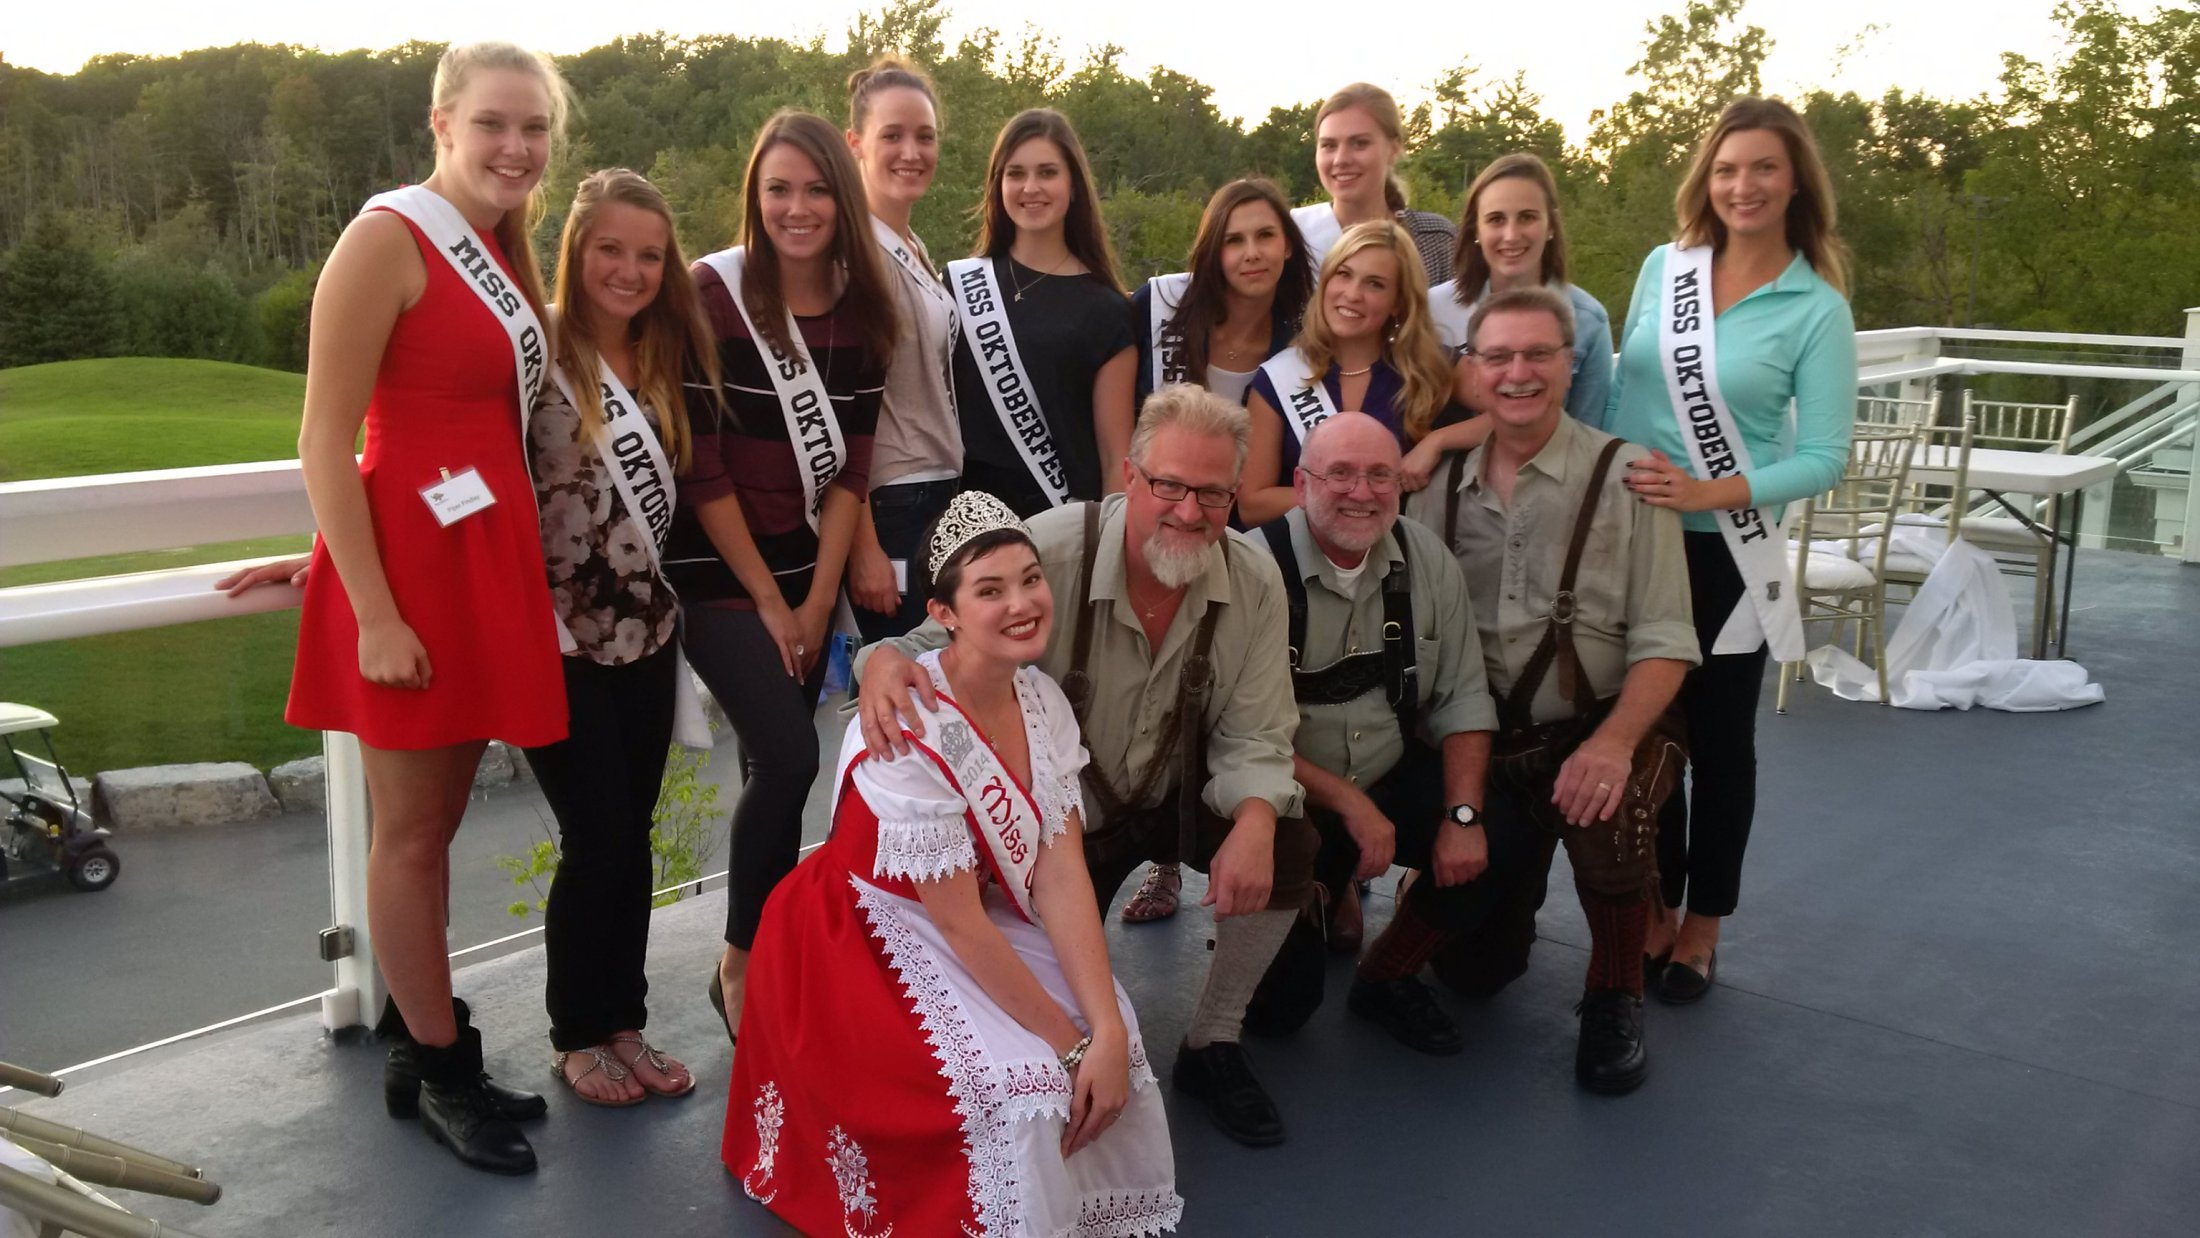 Surrounded by all the 2015Miss Oktoberfest candidates! PROST!